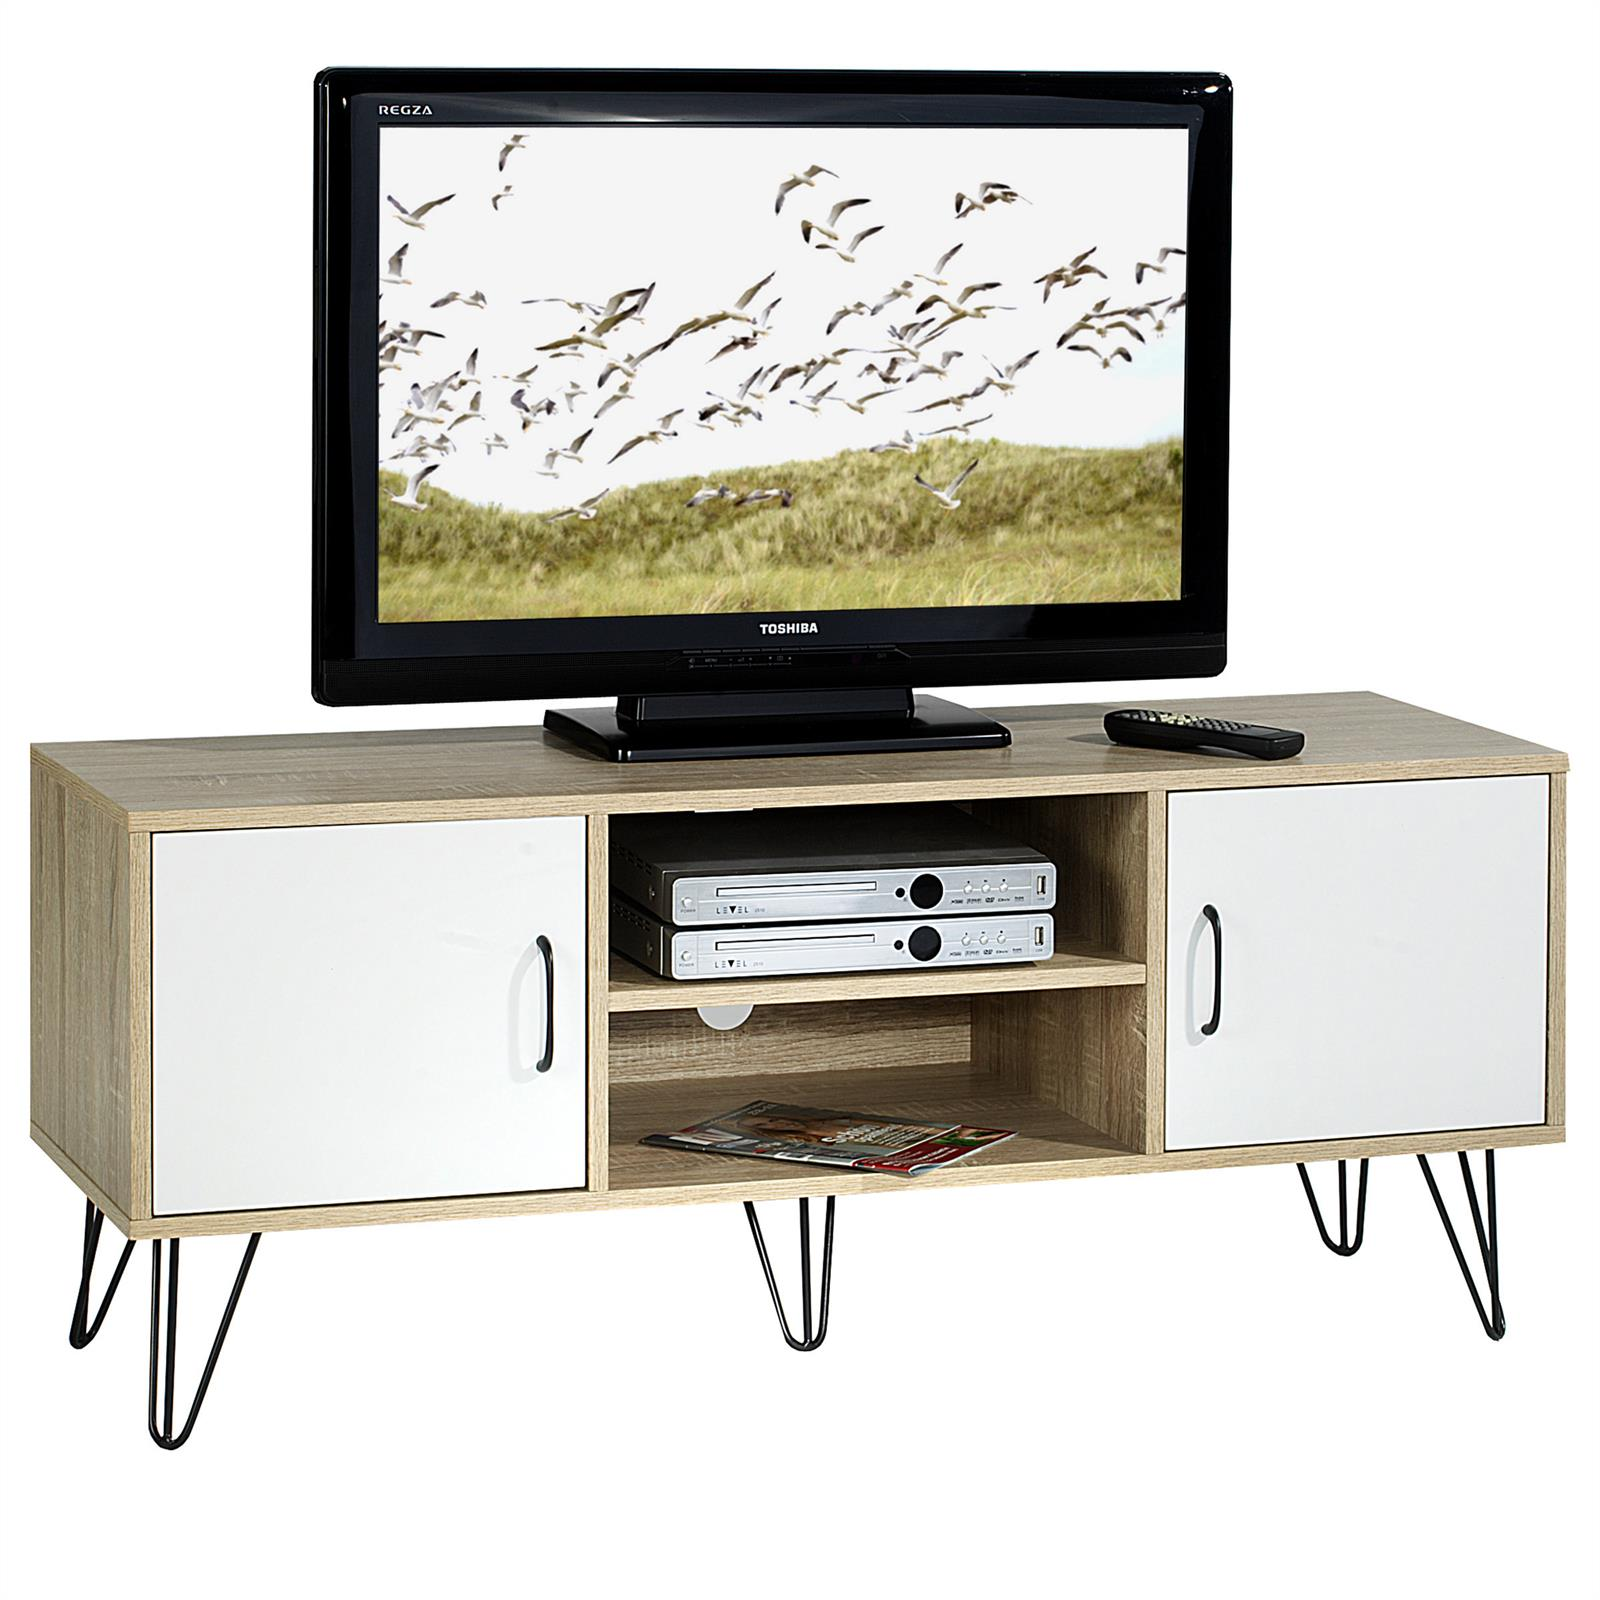 tv lowboard rack hifi m bel dvd fernsehtisch wohnzimmer 2 t ren ablagen 2 farben ebay. Black Bedroom Furniture Sets. Home Design Ideas